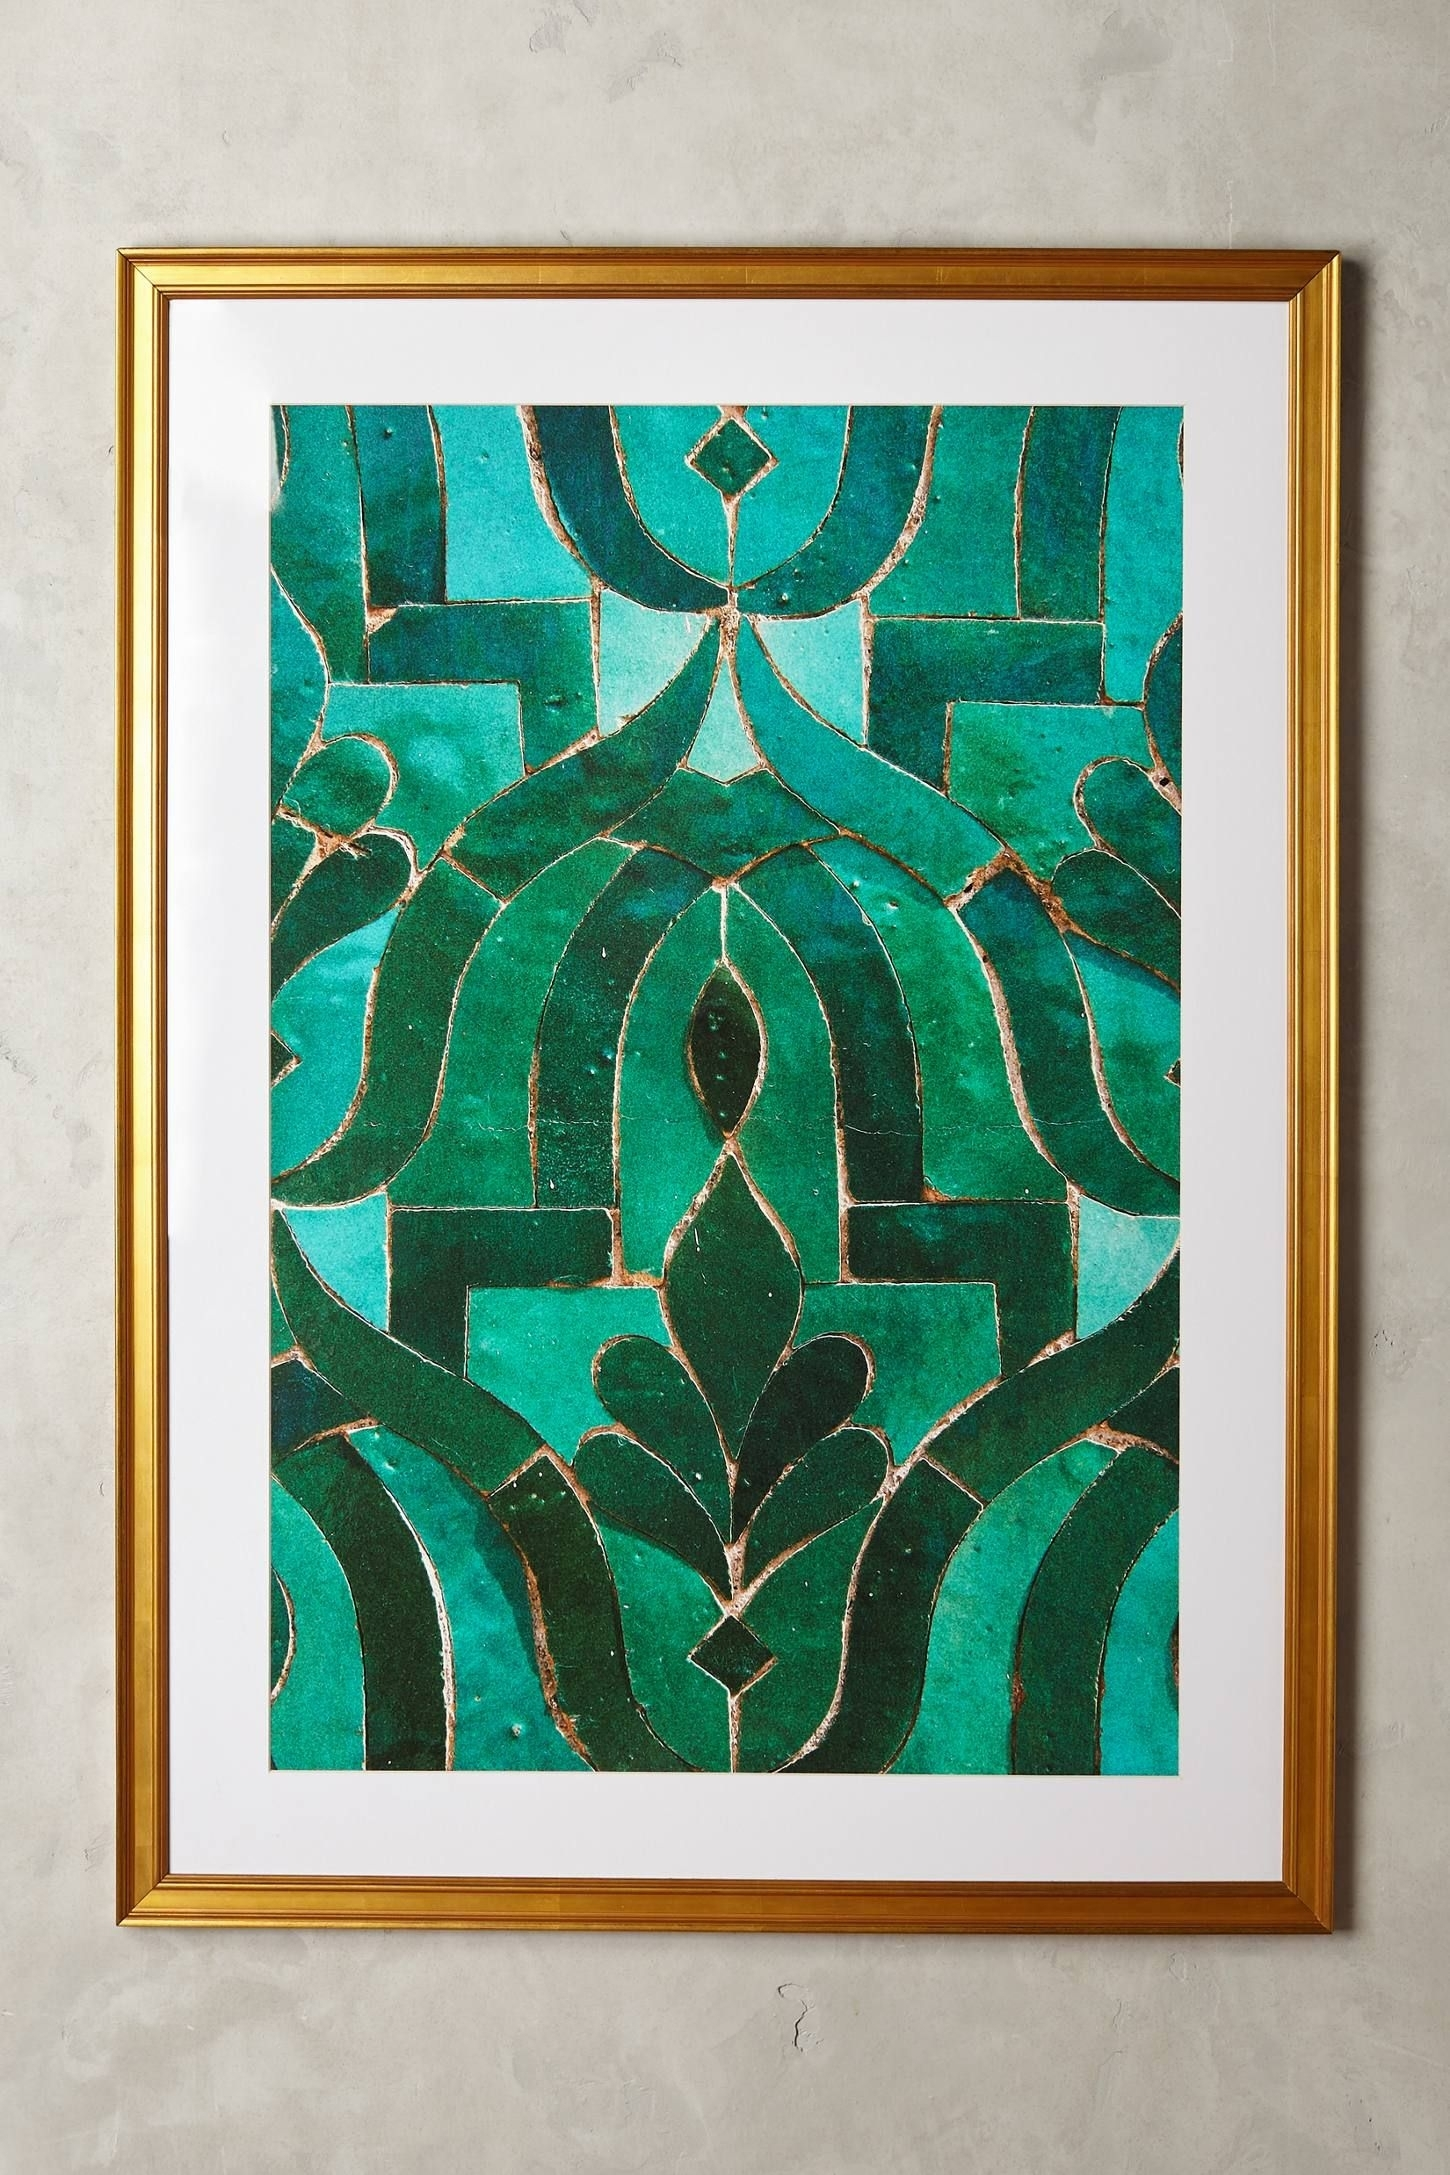 Moroccan Tile Wall Art | Home & Design Love | Pinterest | Moroccan Intended For Current Moroccan Wall Art (View 10 of 20)